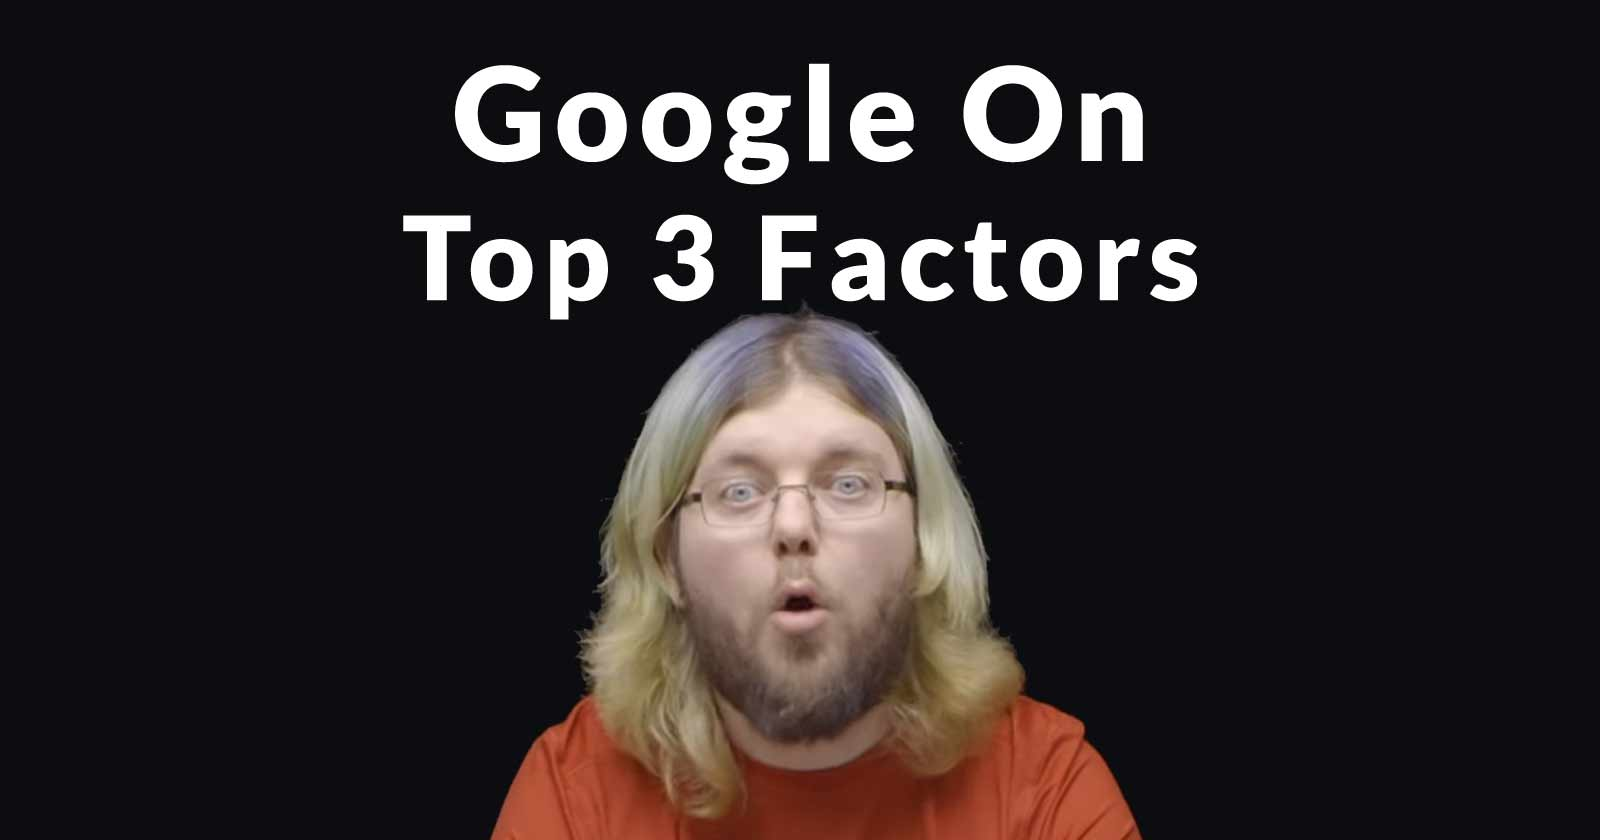 Google Shares Top 3 SEO Factors - Search Engine Journal